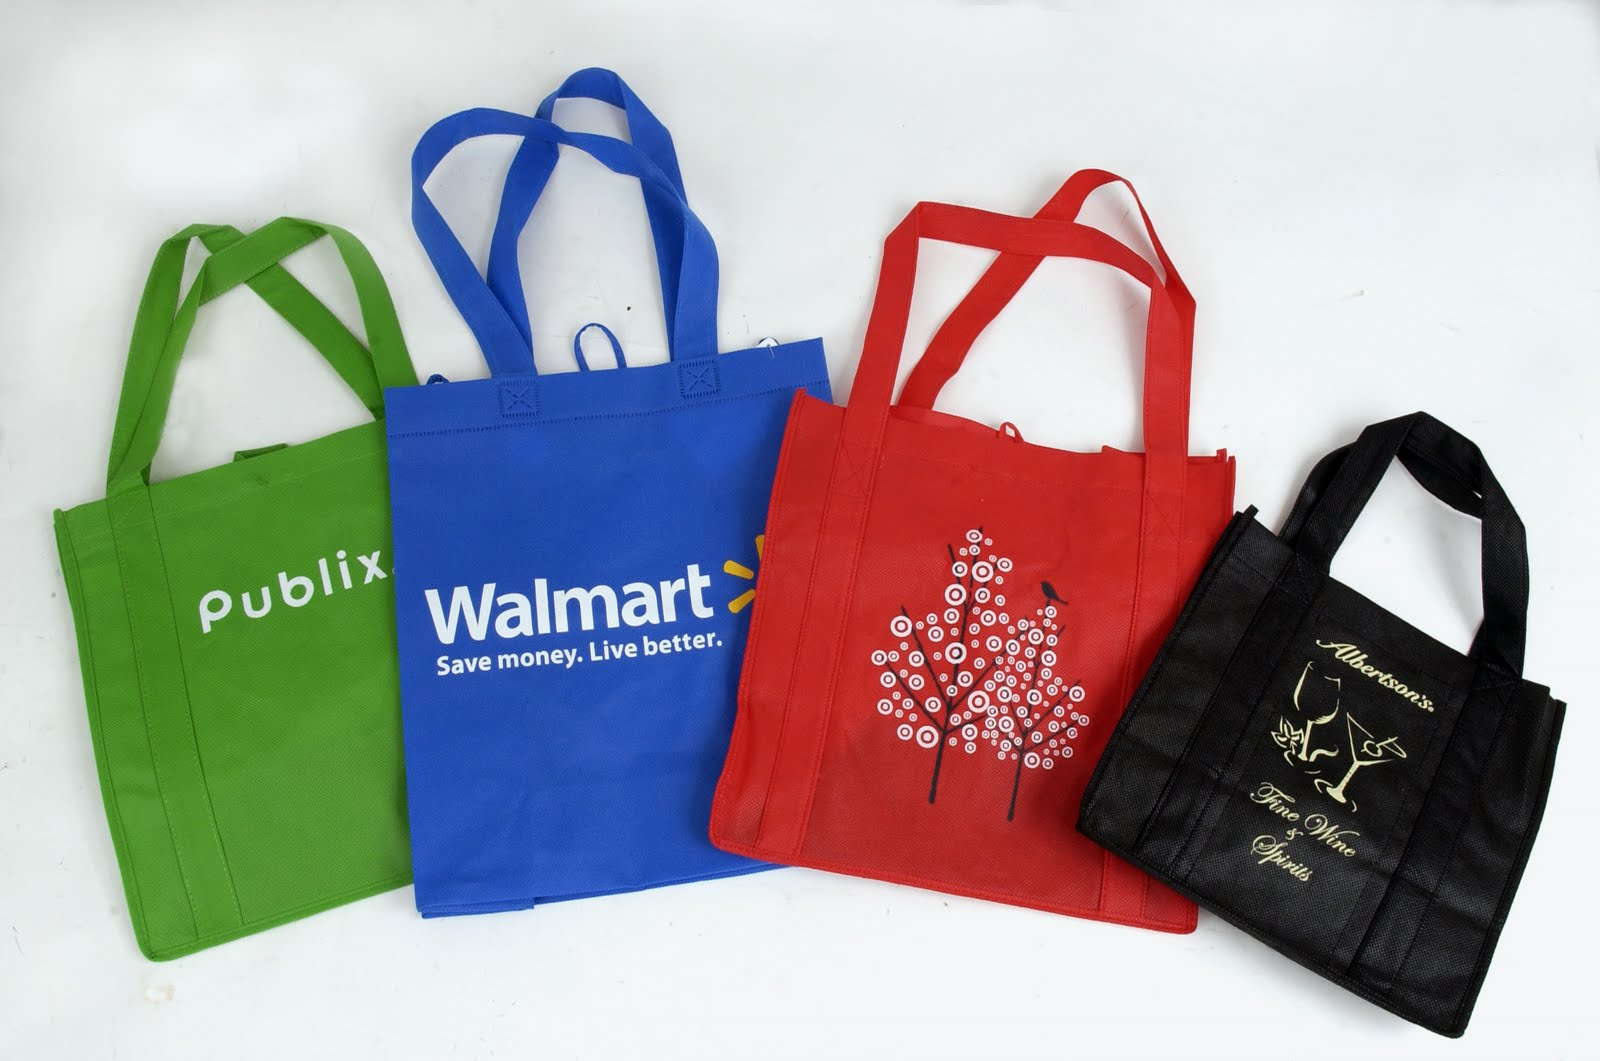 PSFC Environmental Committee: Concerns About Lead in Shopping Bags